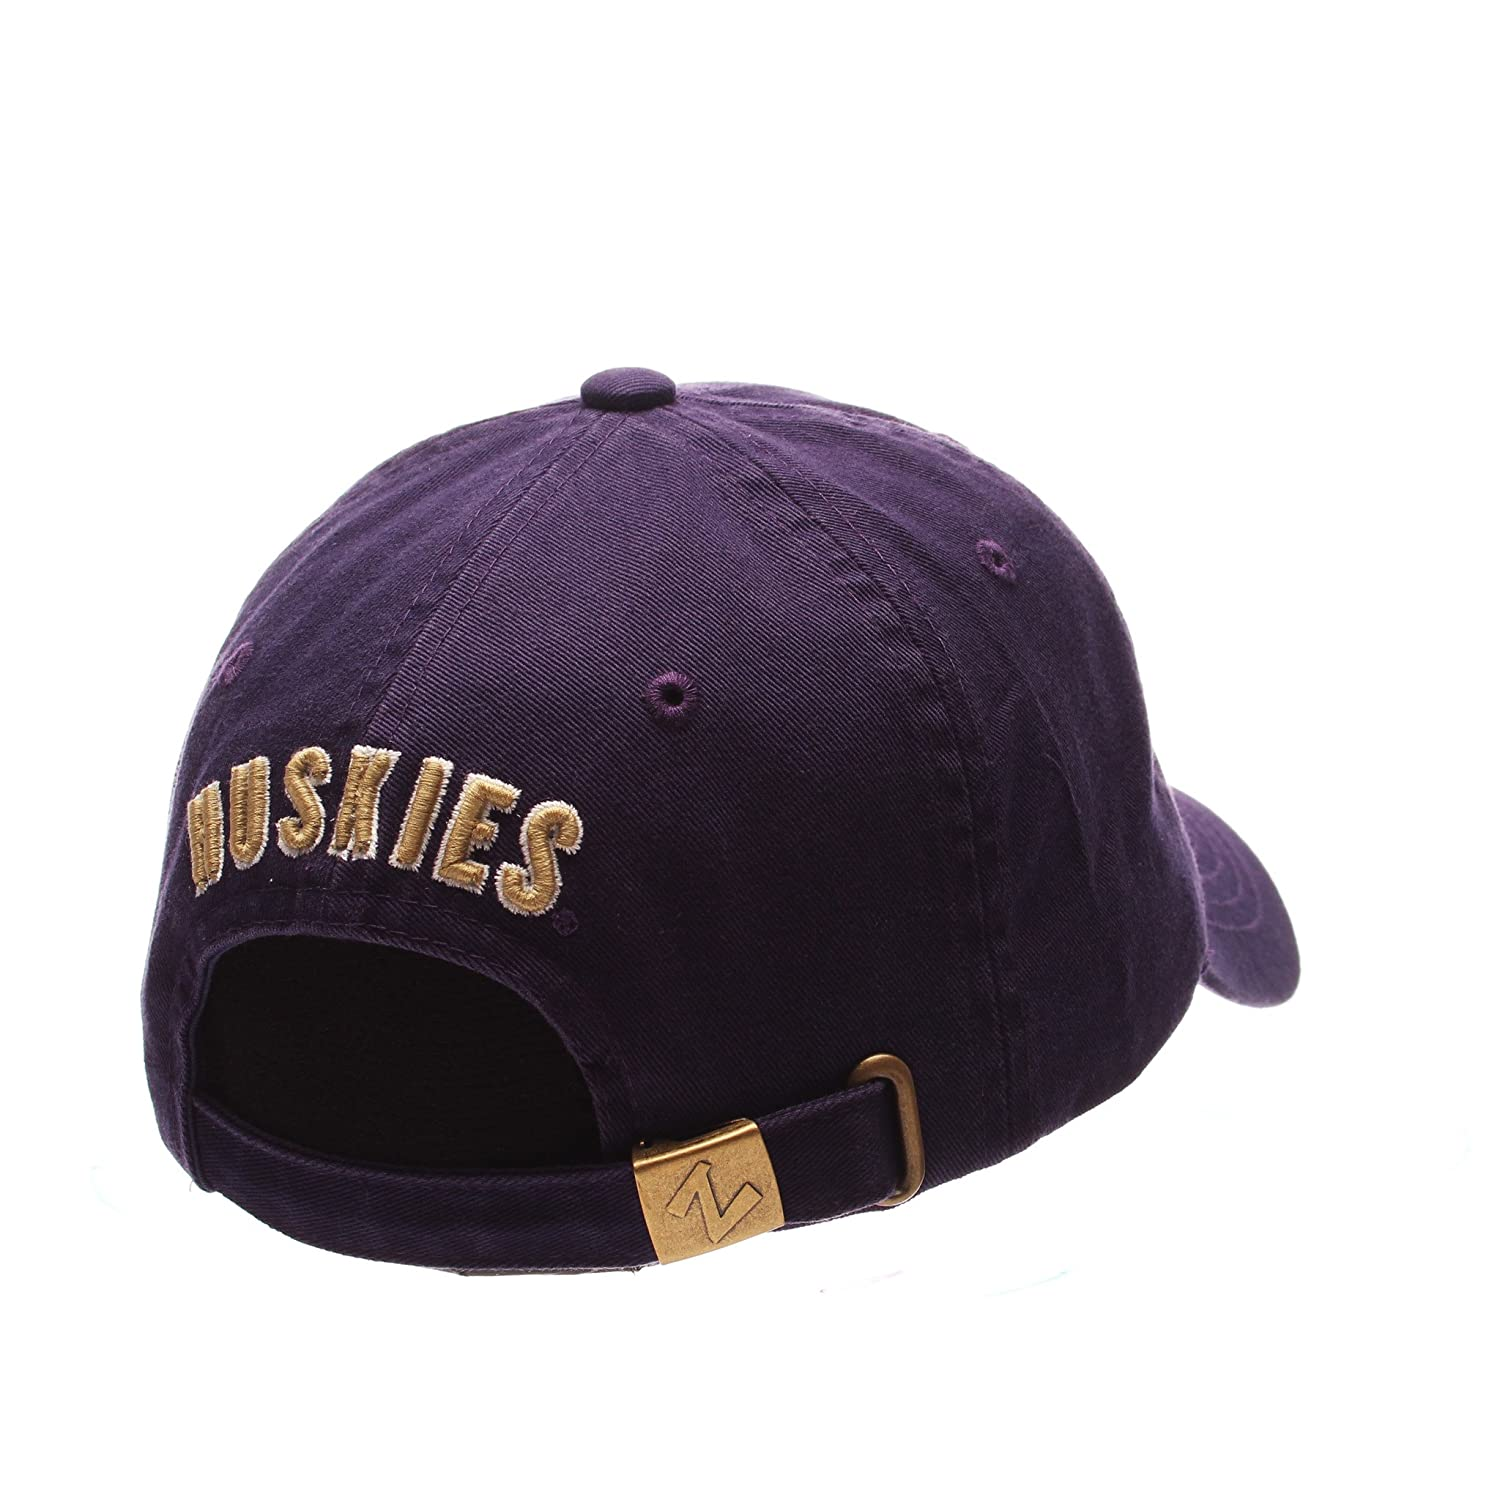 reputable site e897a ed63b Amazon.com  University of Washington Scholarship Huskies Hat by Zephyr   Clothing